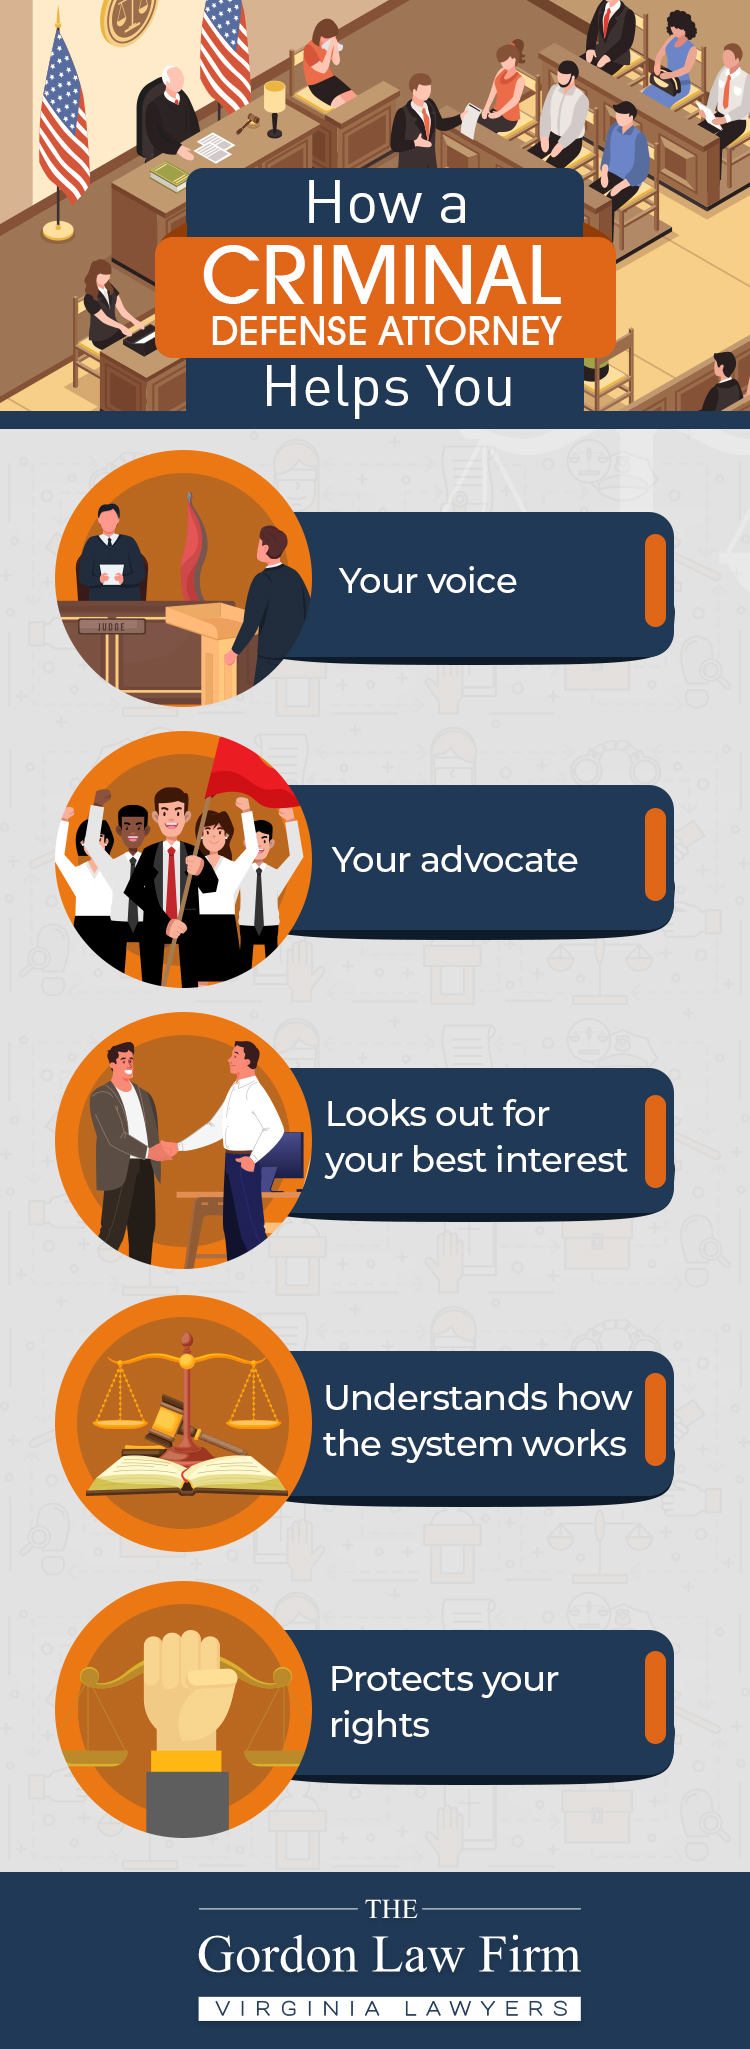 An infographic discussing how a criminal defense attorney can help your case.